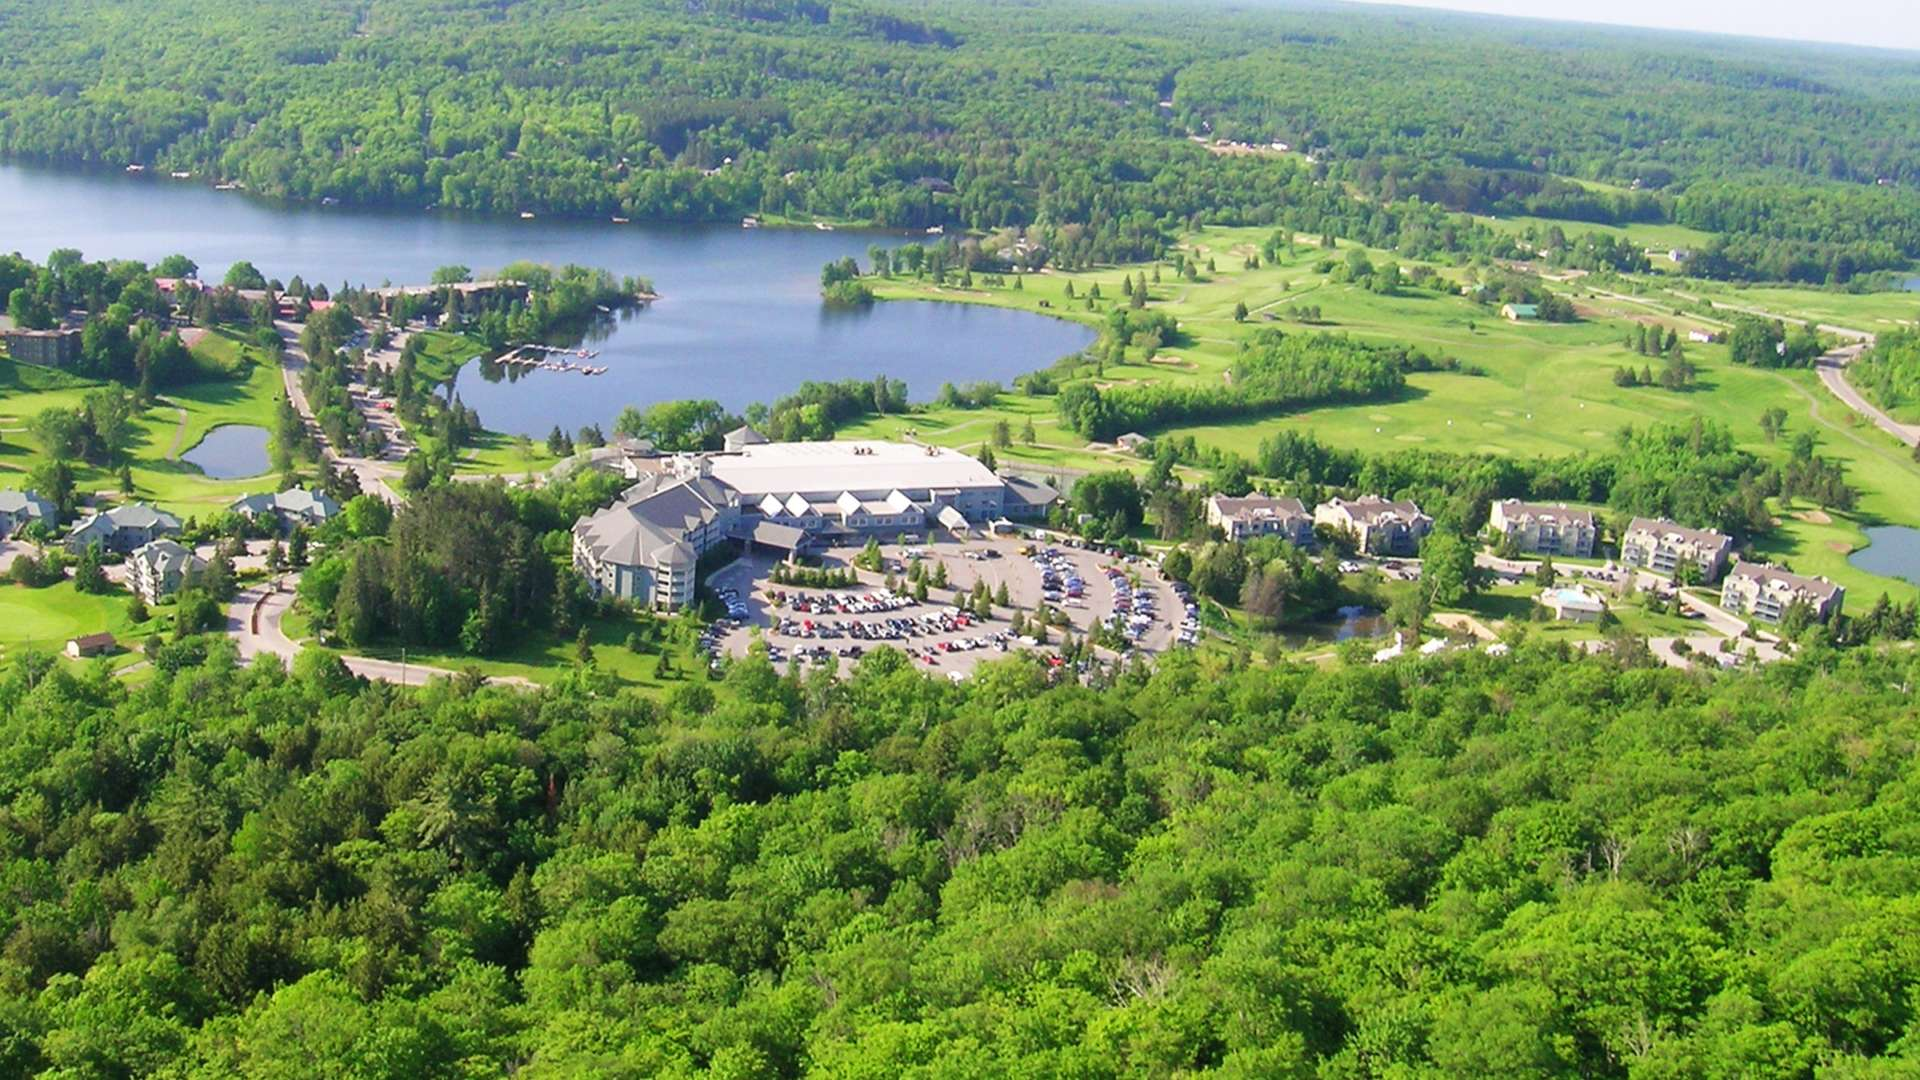 Deerhurst Resort Map Deerhurst Resort   Muskoka Deerhurst Resort Map